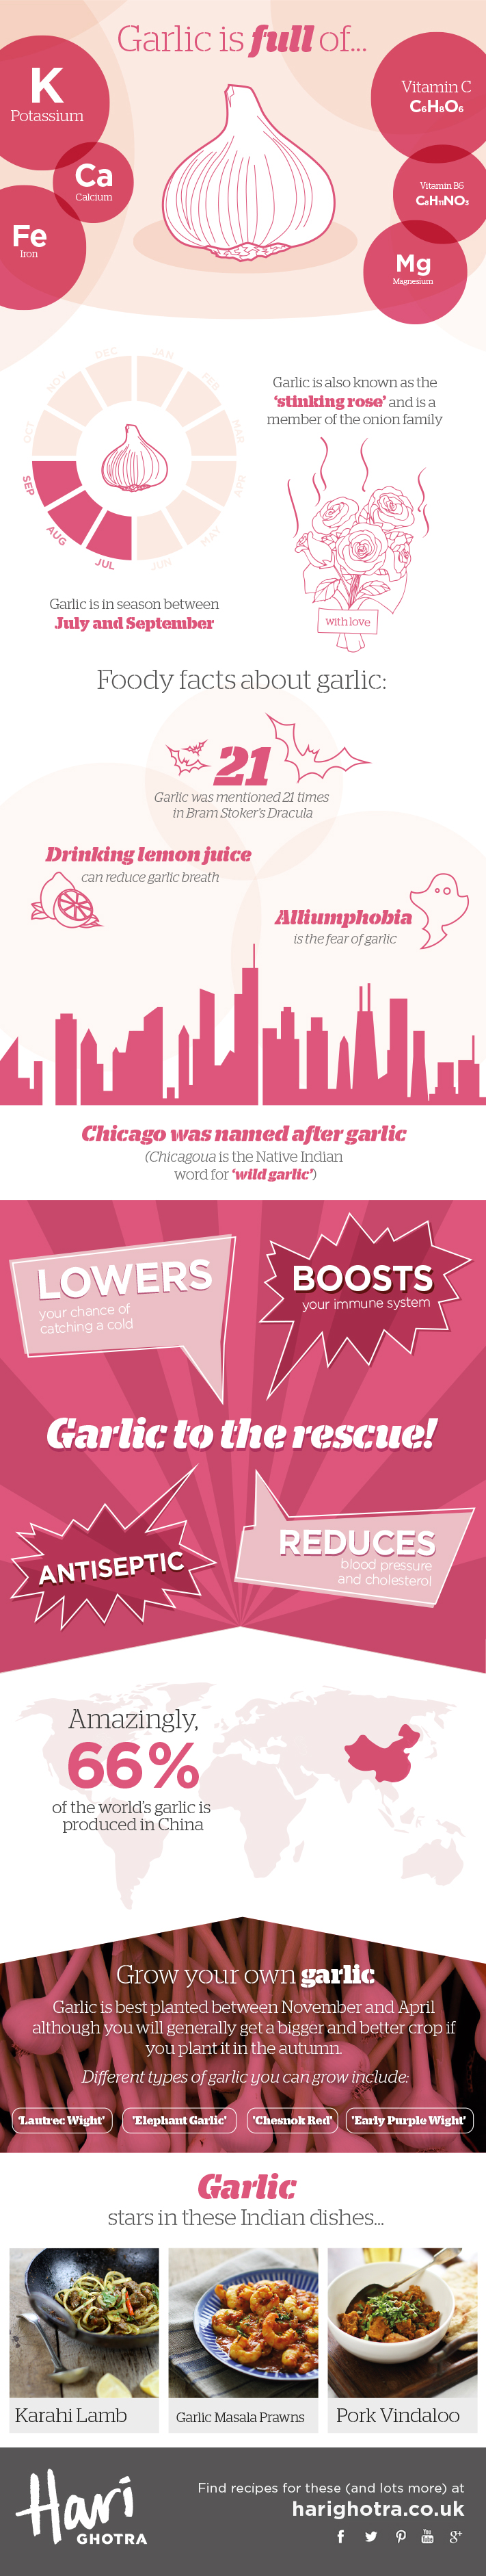 Chef Hari Ghotra's Key Ingredients Garlic Infographic